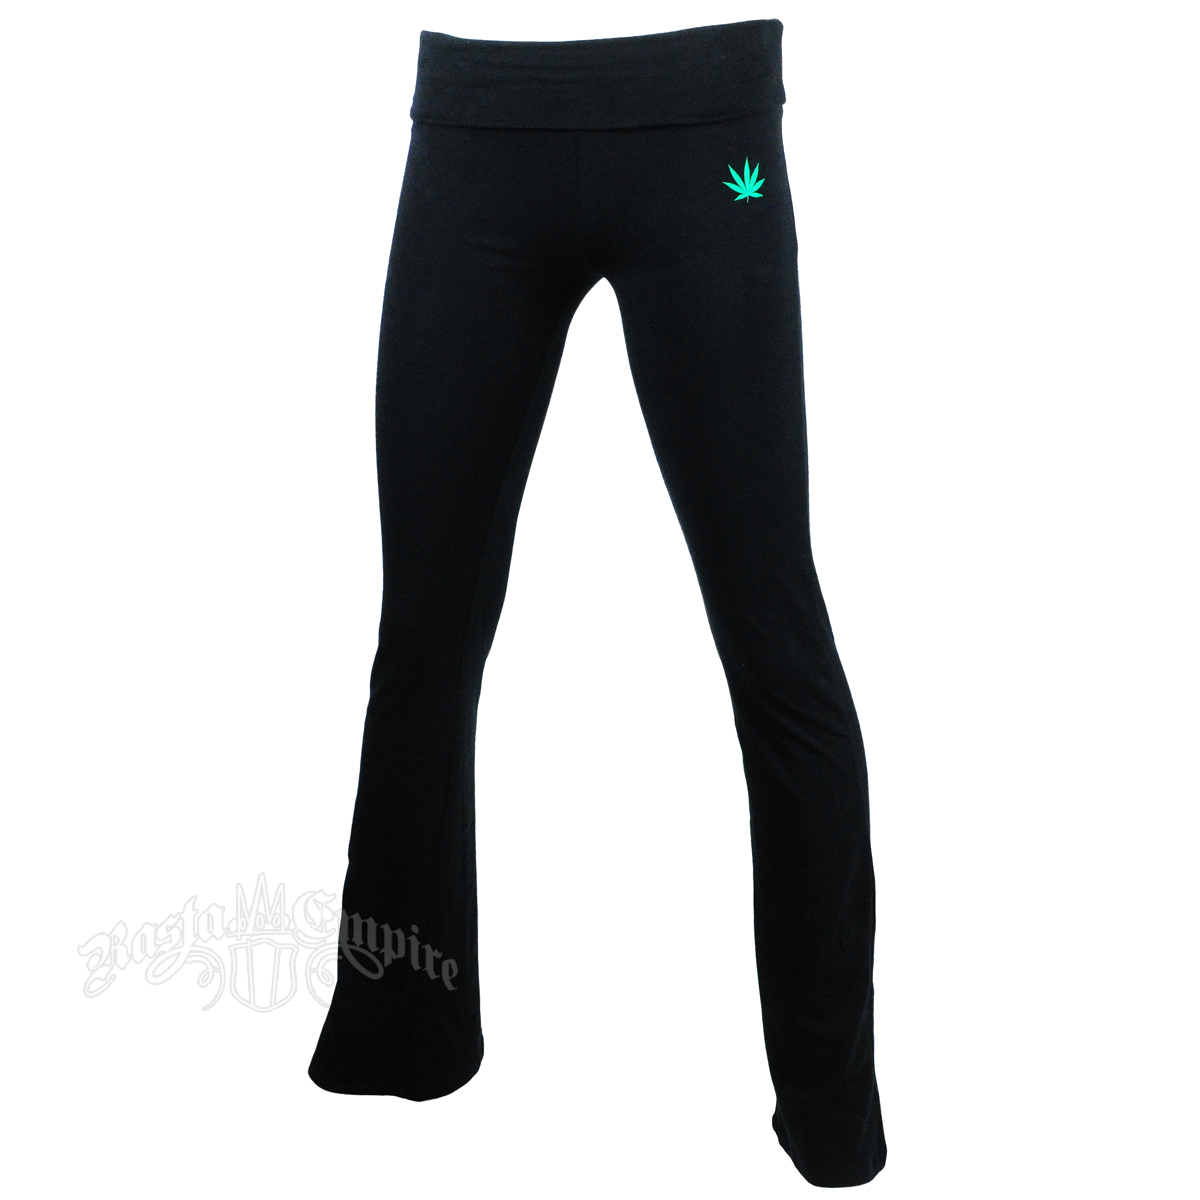 Bob Marley One Love Black Yoga Pants - Women's at RastaEmpire.com